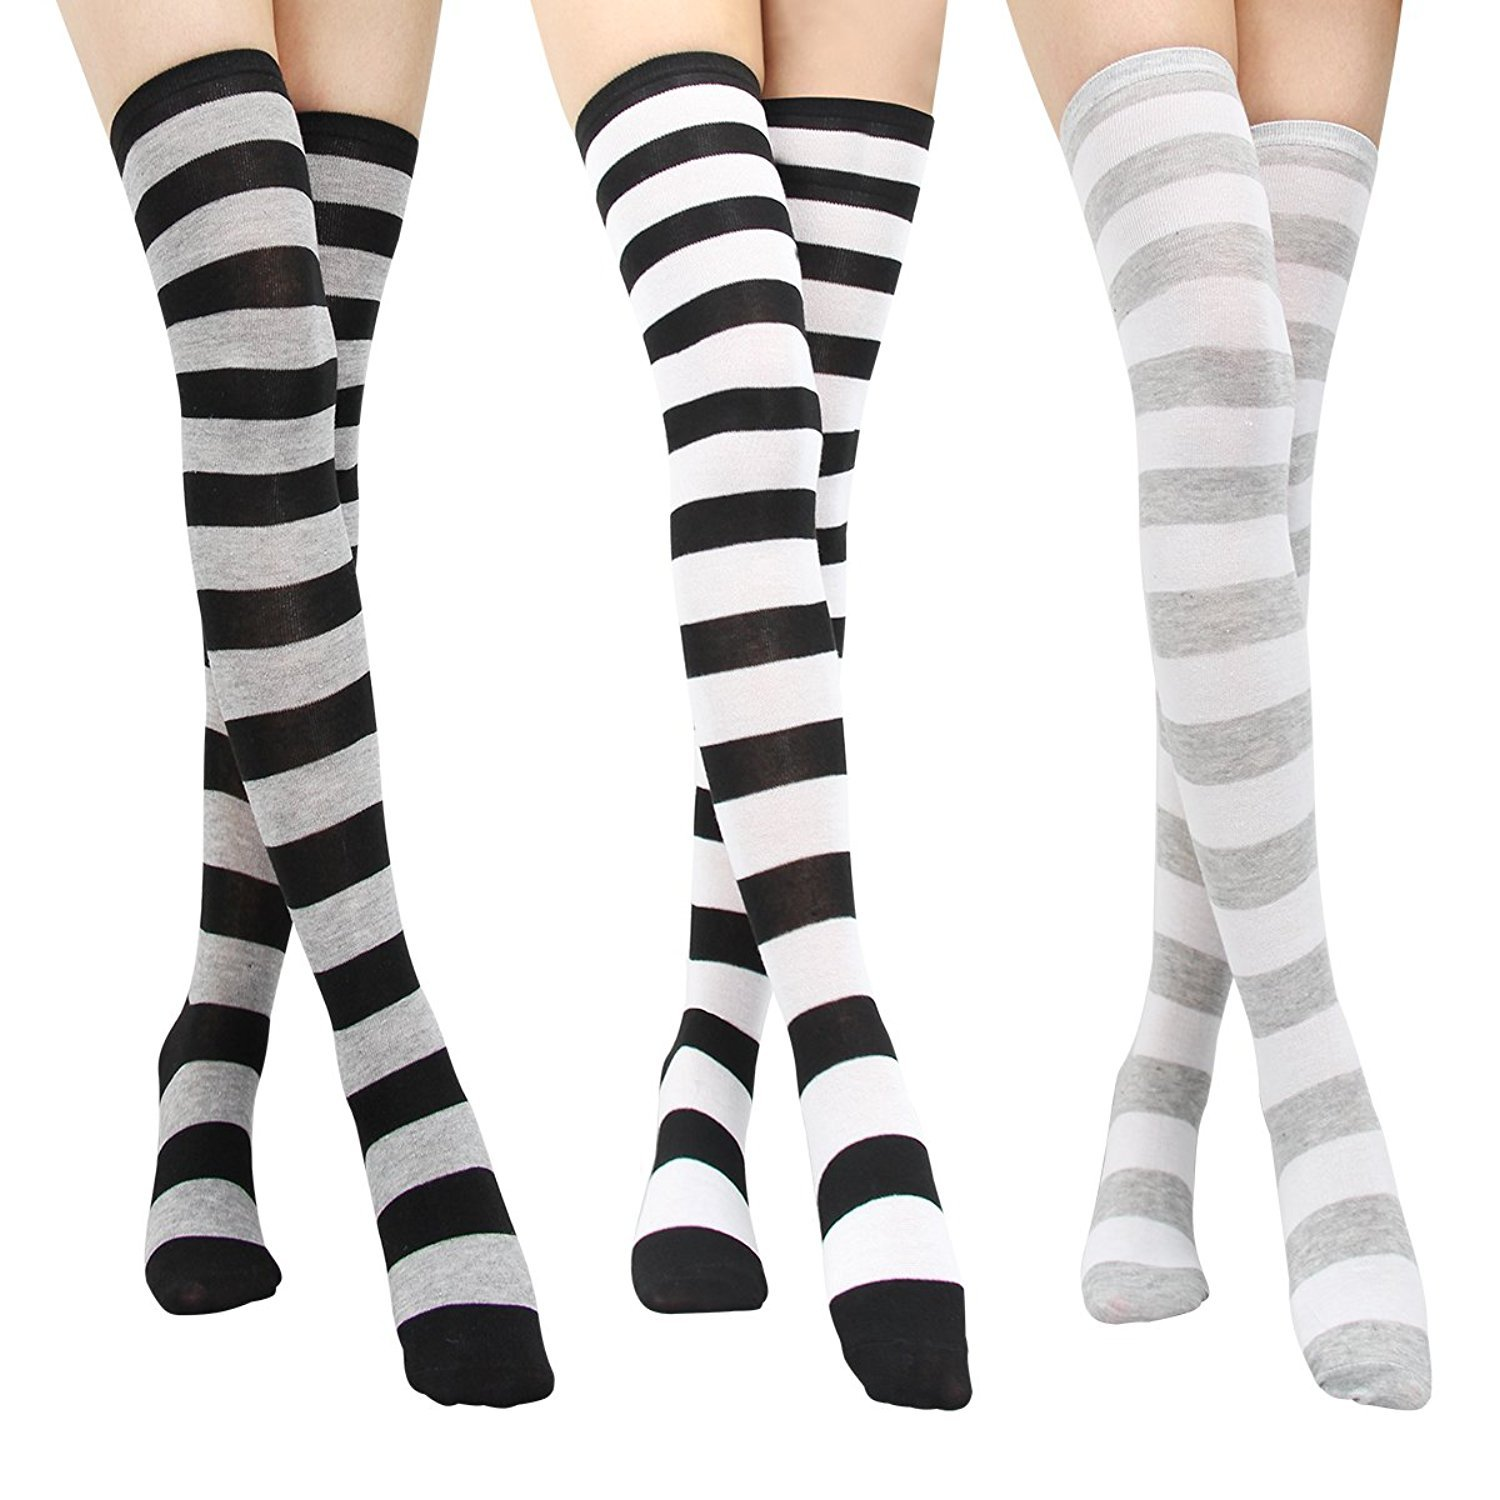 c3120cdaac5ec Beautyer Long Striped Thigh High Socks 3 Pairs for Women Over Knee Stockings  at Amazon Women's Clothing store: